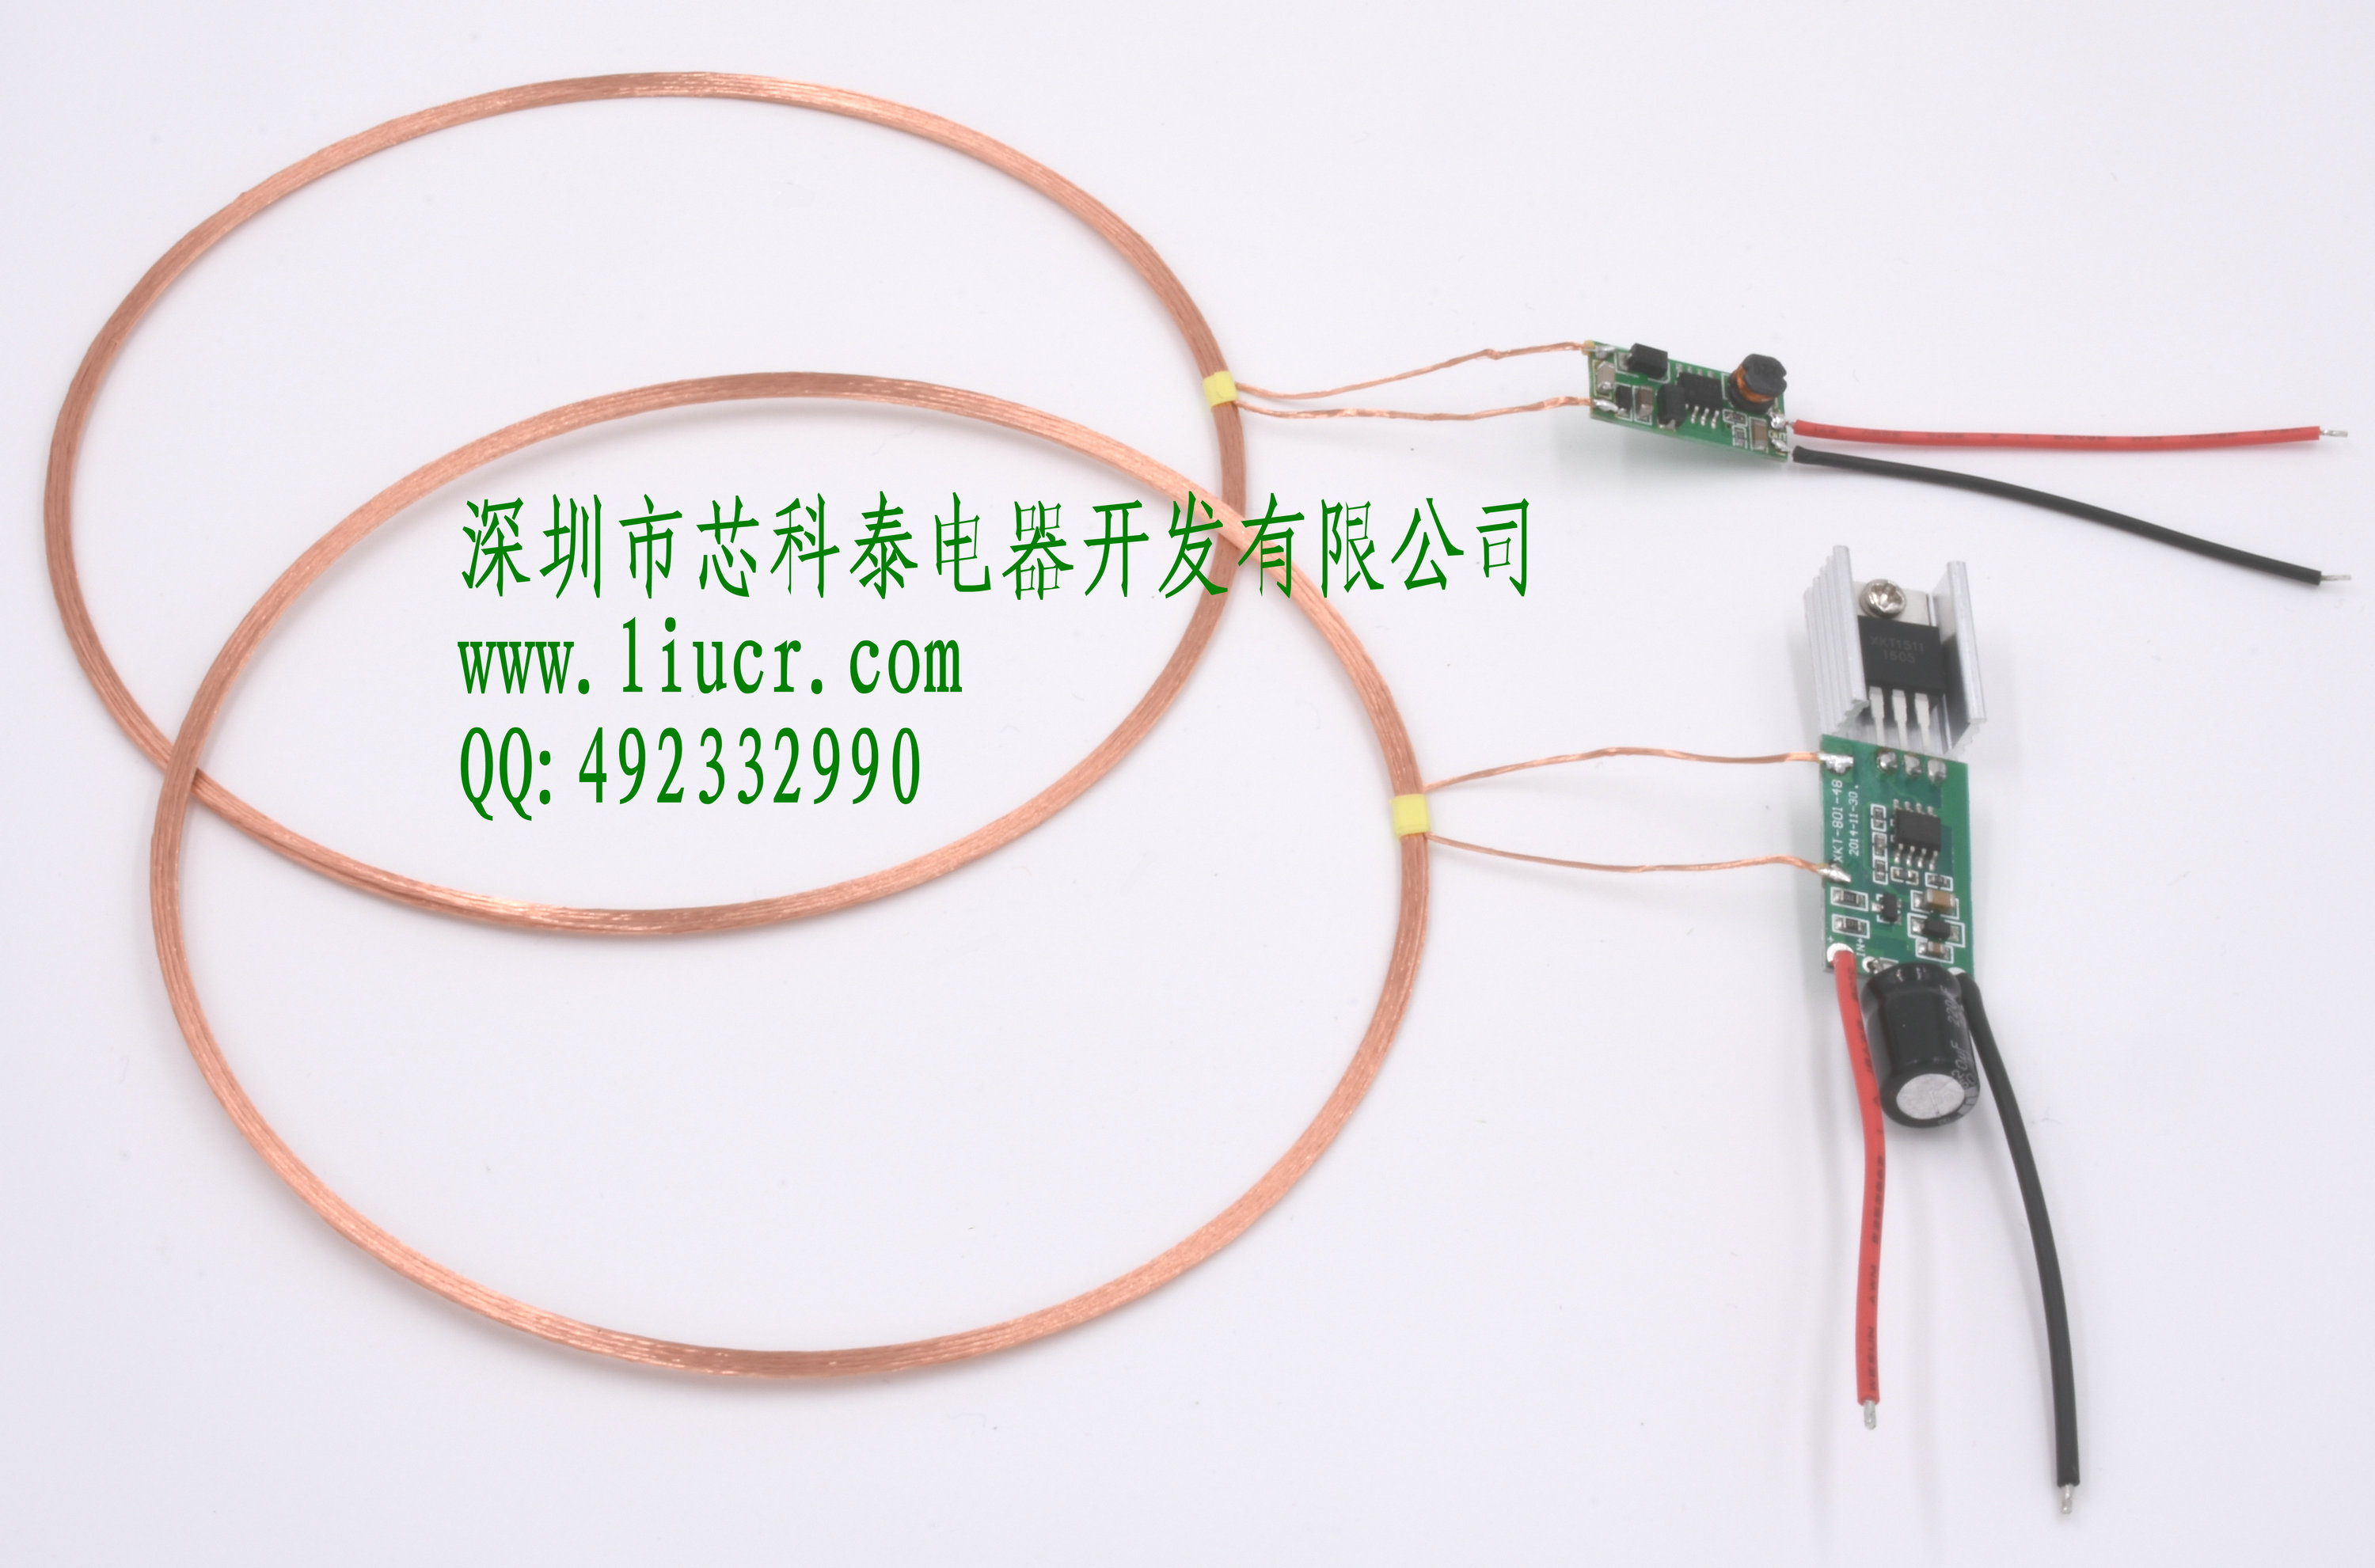 Wireless Charging Power Supply Module 801ic Program Circuit On 40mm100mm Long Distance High Current